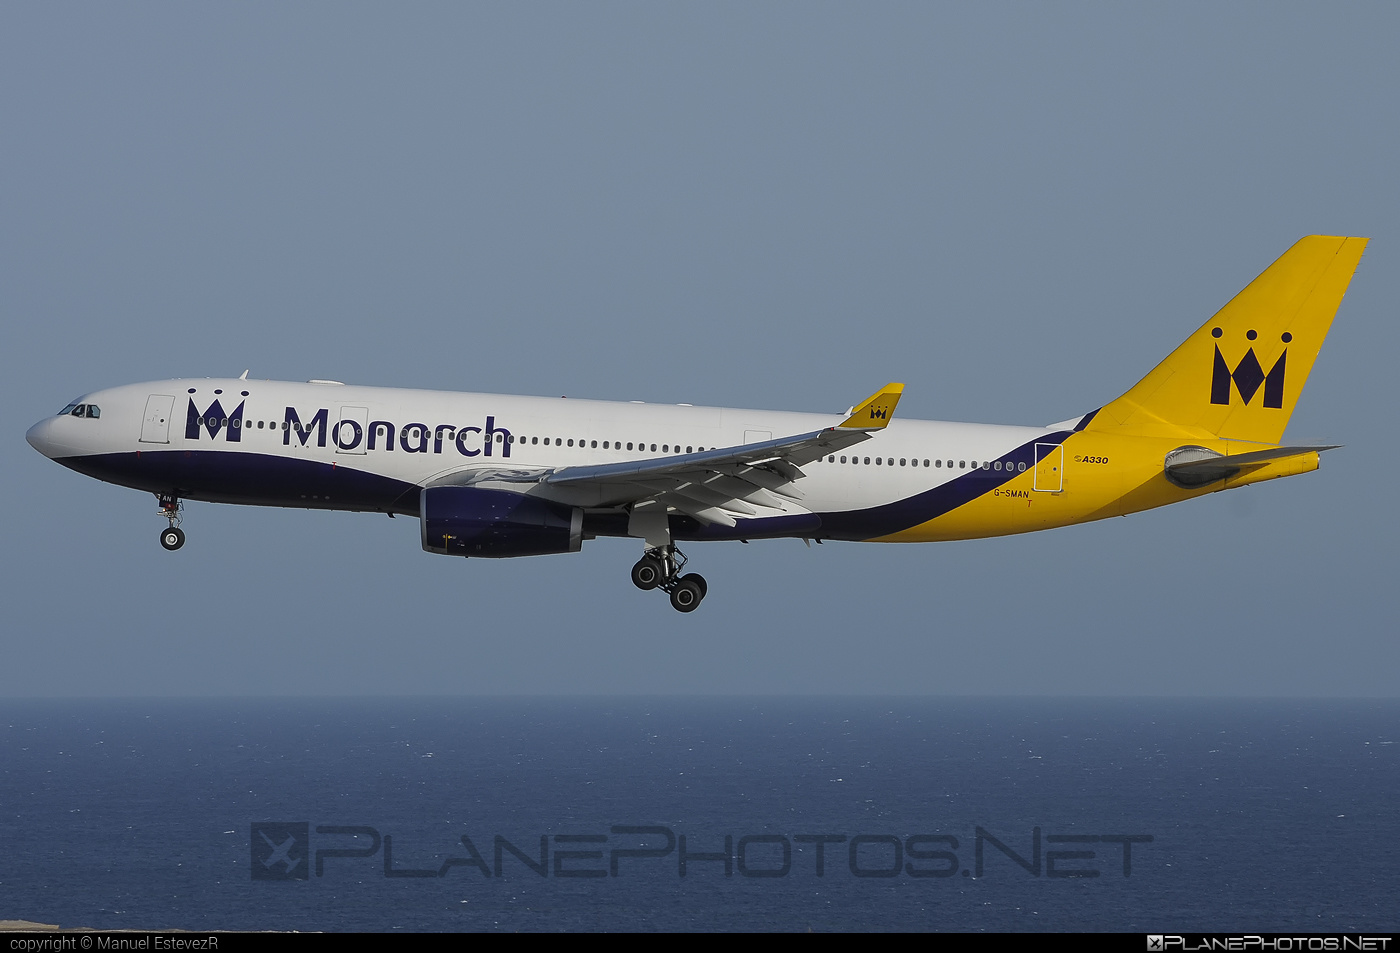 Airbus A330-243 - G-SMAN operated by Monarch Airlines #a330 #a330family #airbus #airbus330